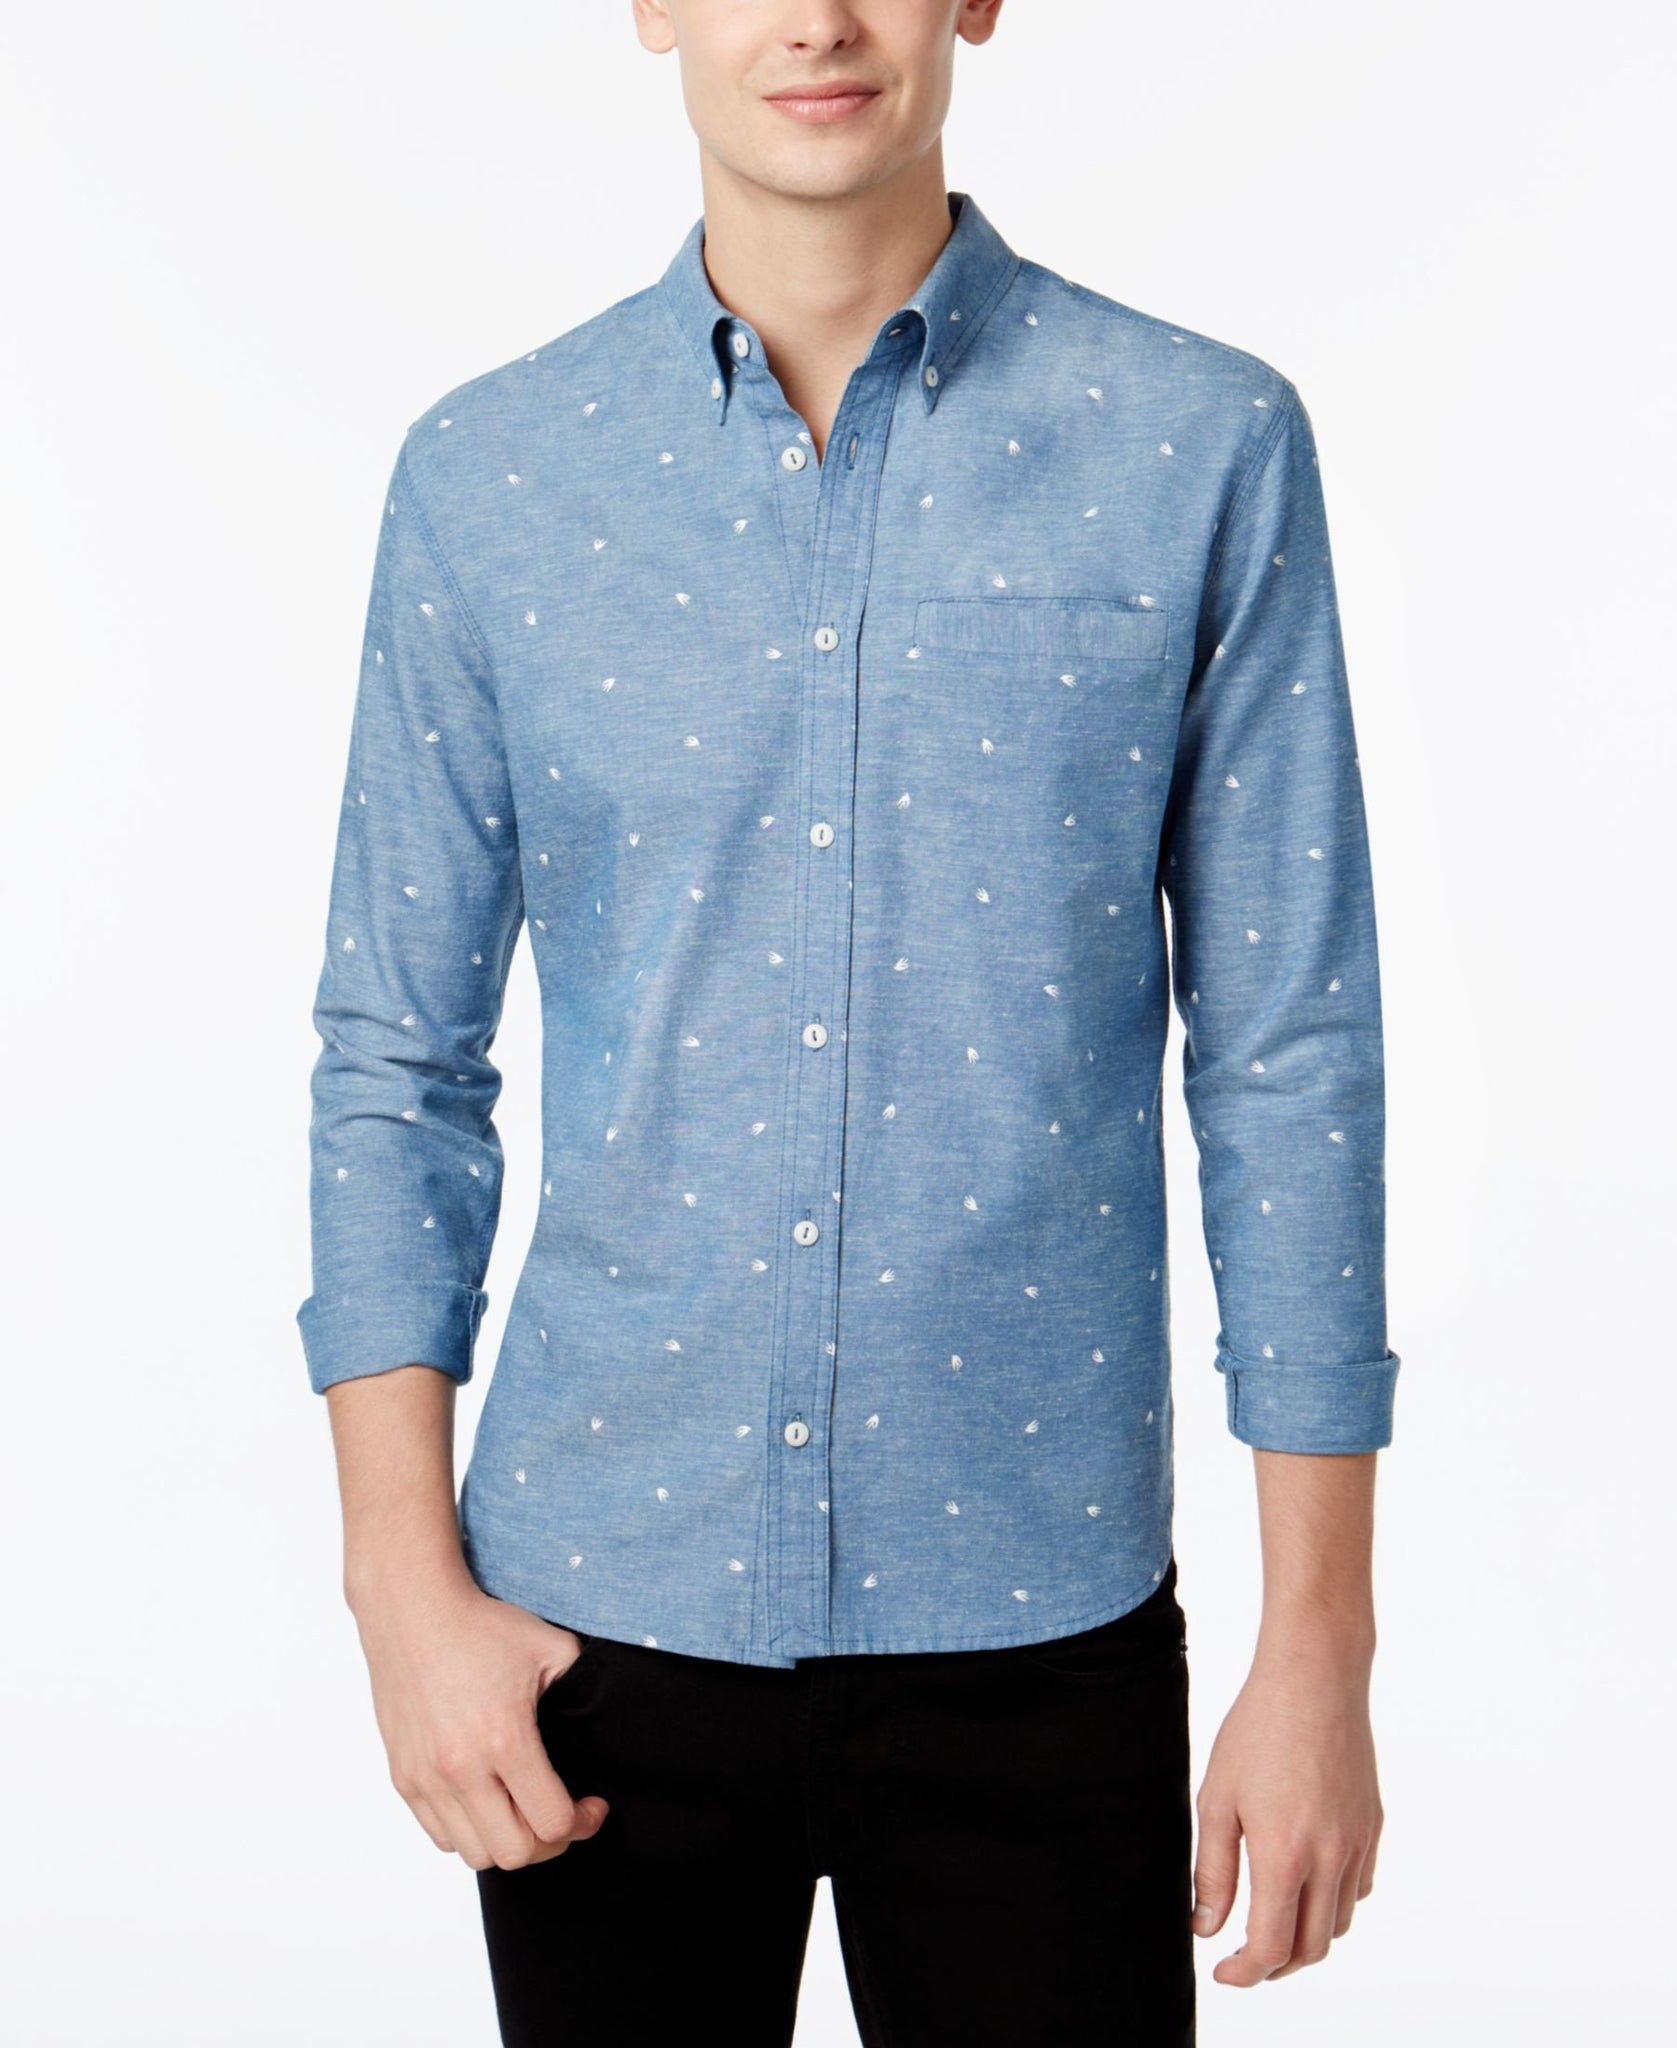 WHT SPACE by Shaun White Men's Printed Chambray Shirt